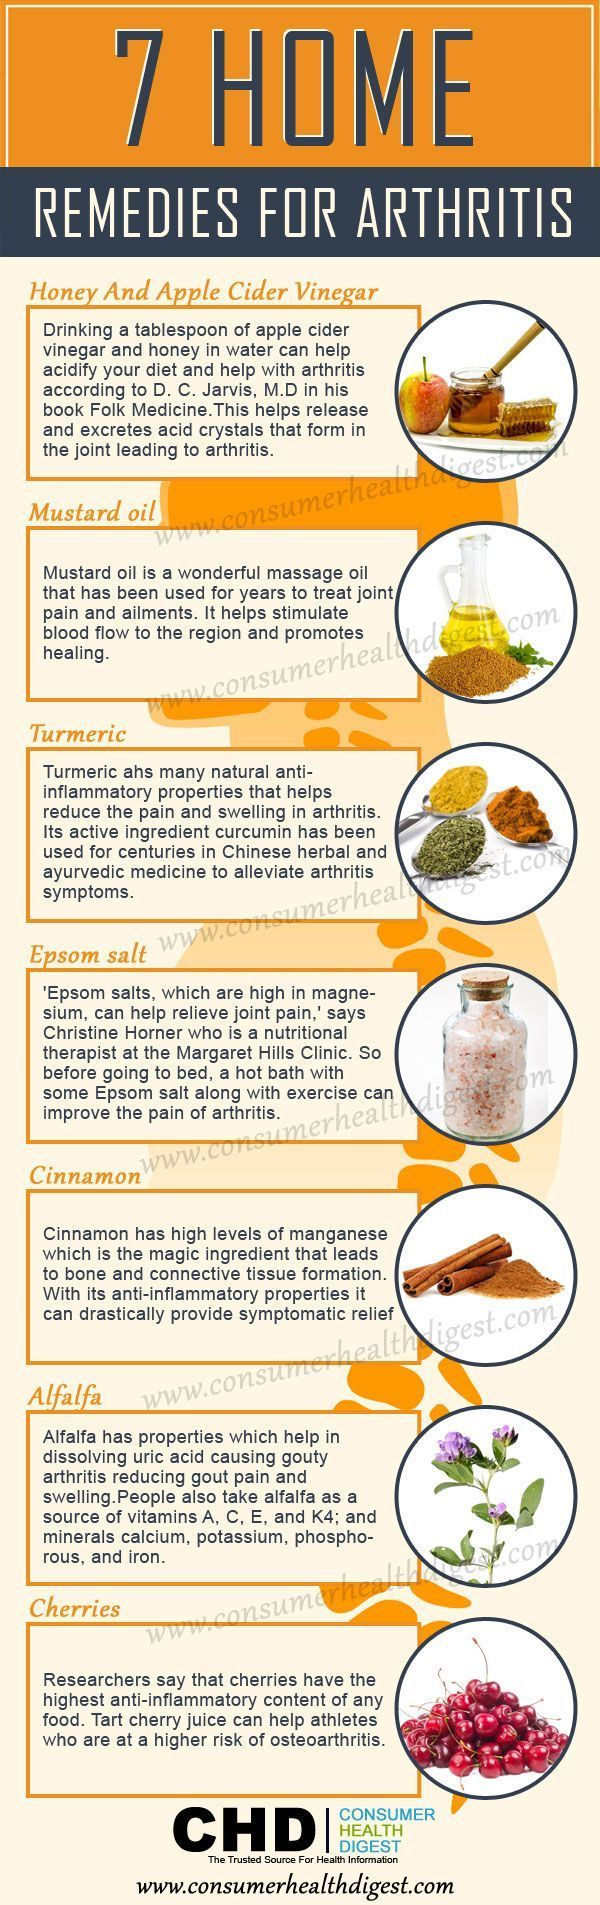 7 Home Remedies For Arthritis - Infographic